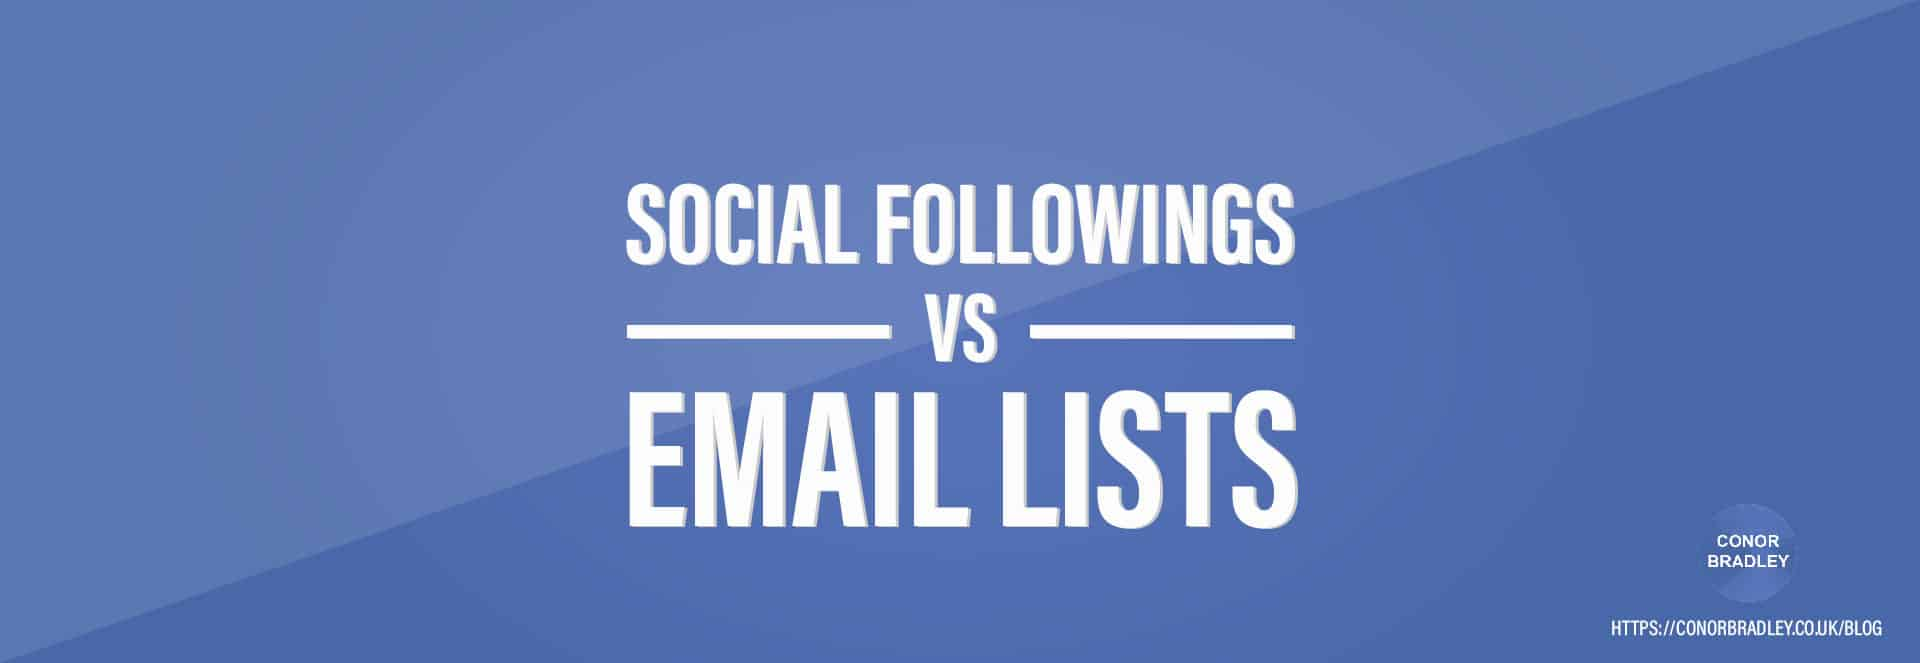 Social Followings Vs Email Lists Header